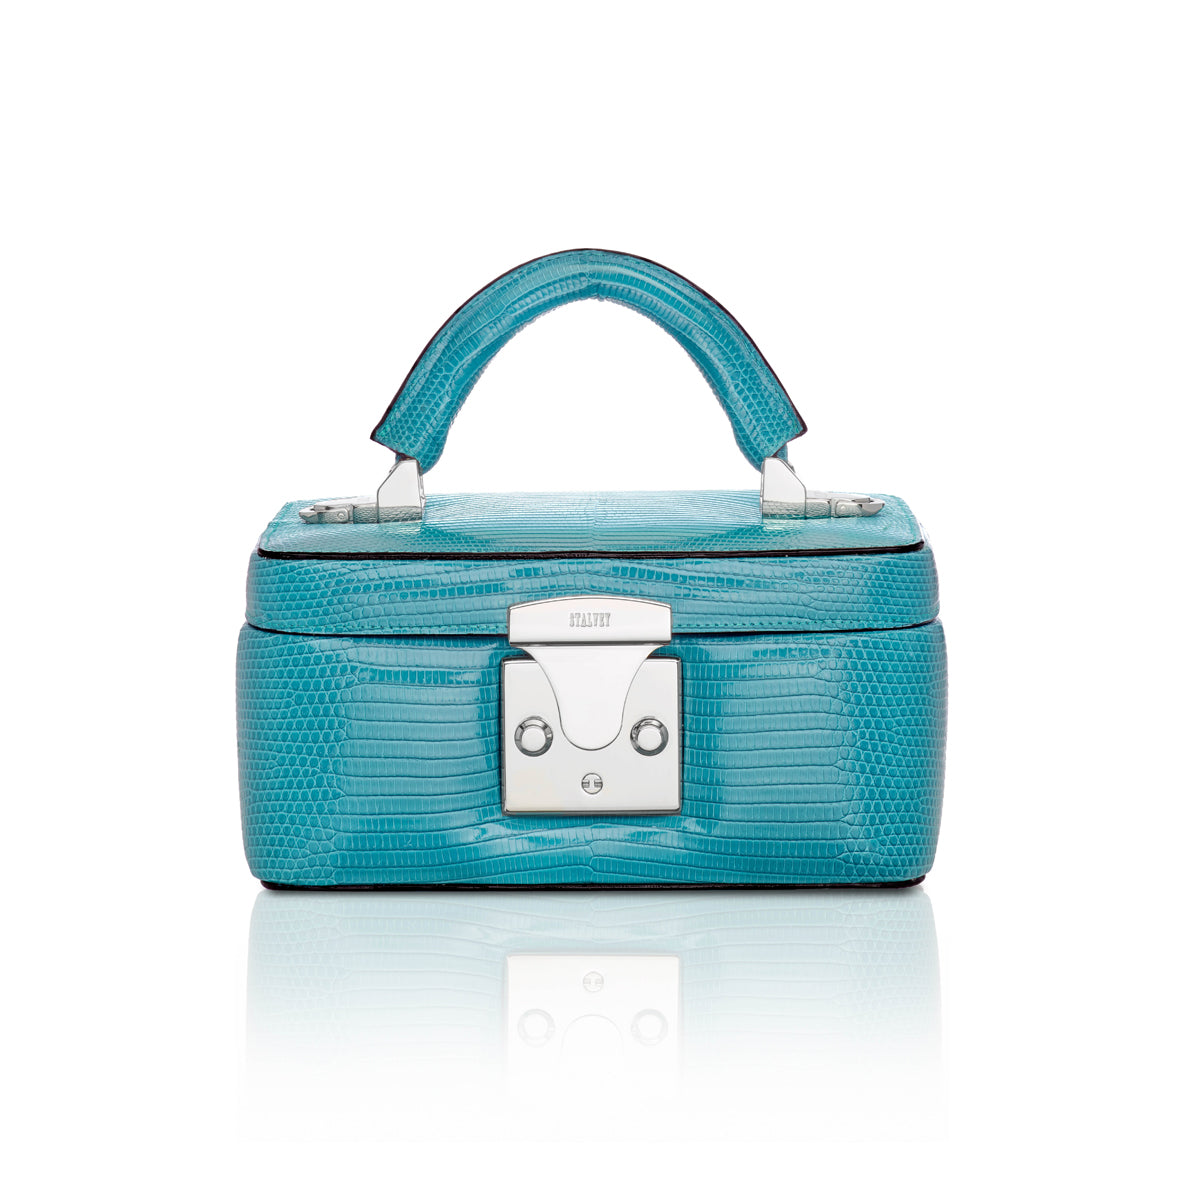 Beauty Case 1.7 Mini - Teal Lizard